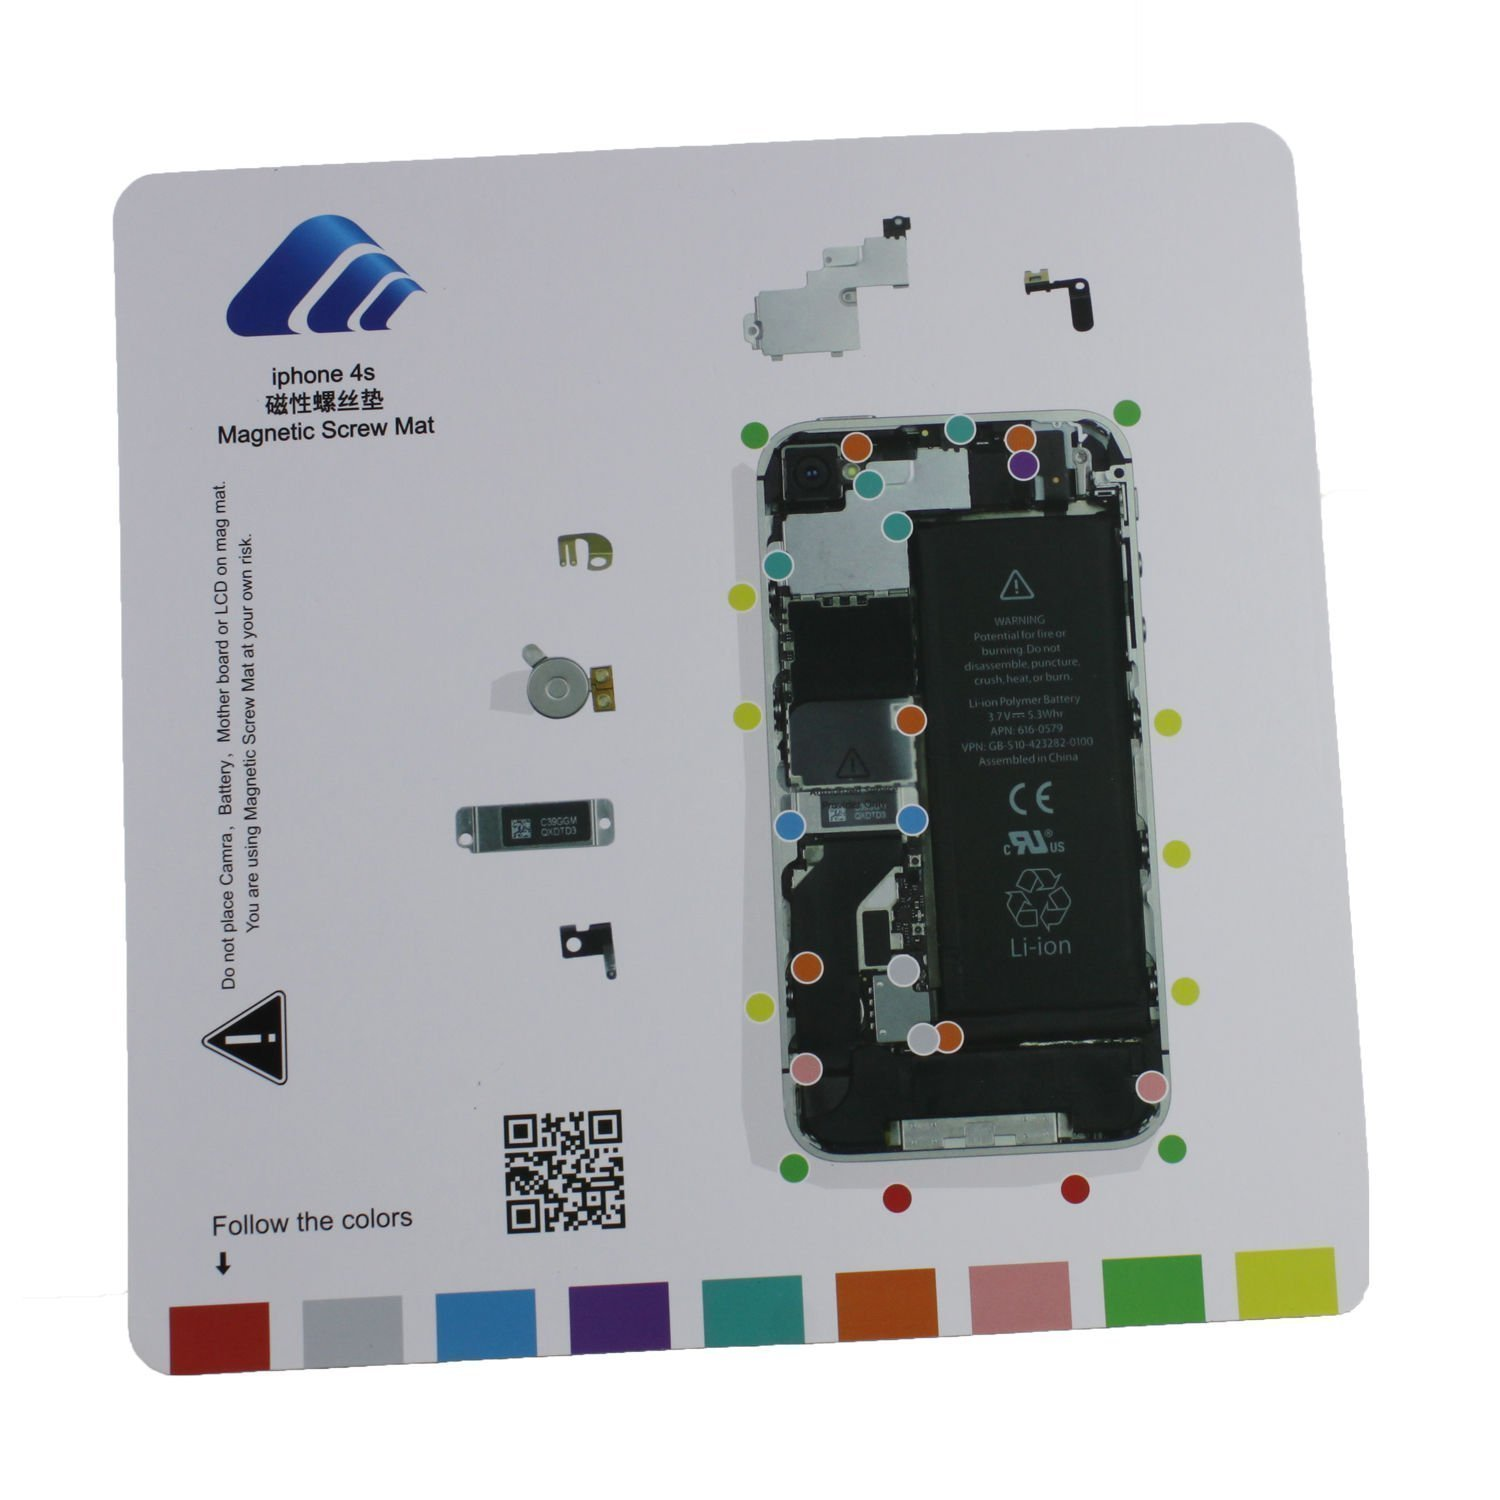 iphone 4 screw layout diagram mercedes w124 e220 wiring cheap thread chart find deals on line at get quotations magnetic project mat for 7 7plus 6 6s plus 5s 5c